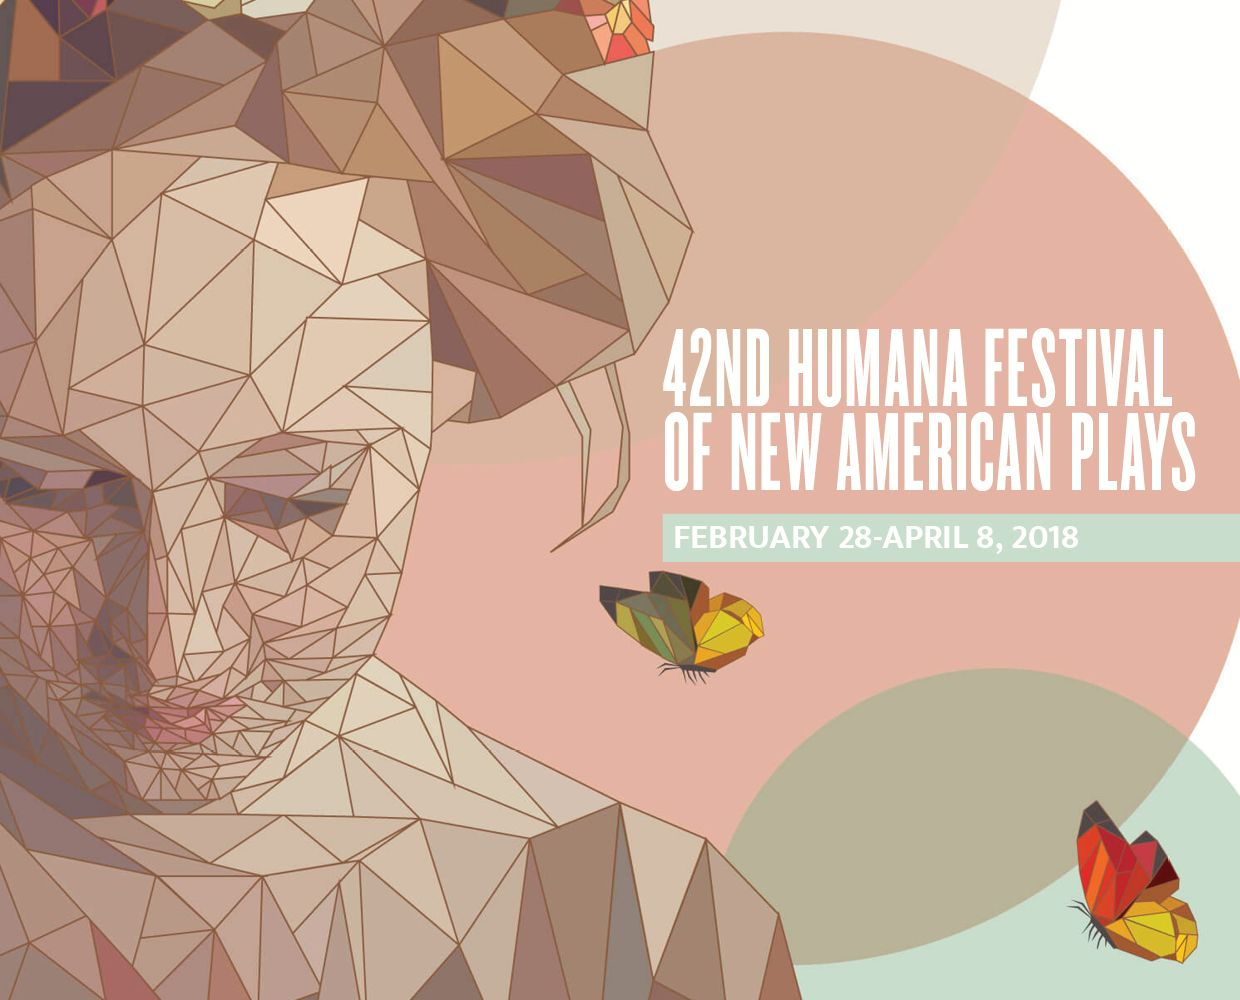 February 28 - April 8 - Humana Festival of New American Plays image